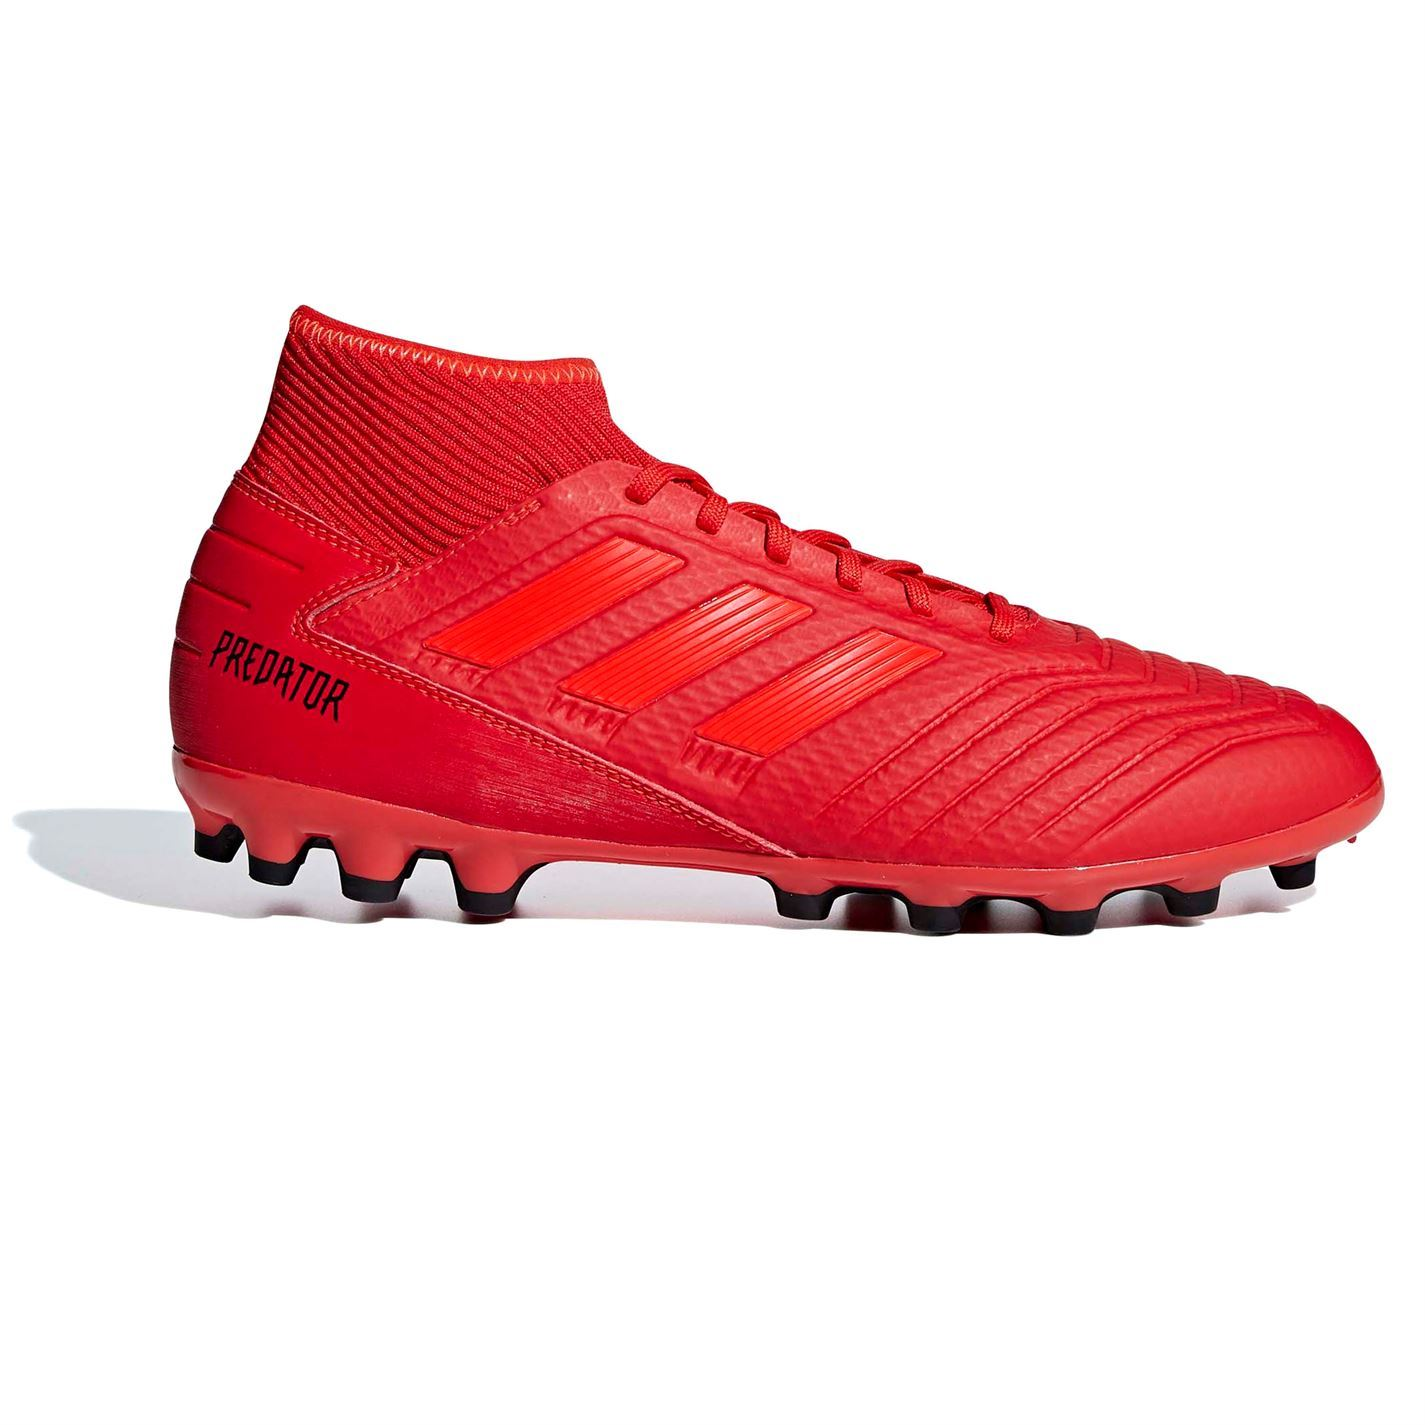 ... adidas Predator 19.3 AG Artificial Ground Football Boots Mens Red Soccer  Cleats ... 8ca78d86ca7f8